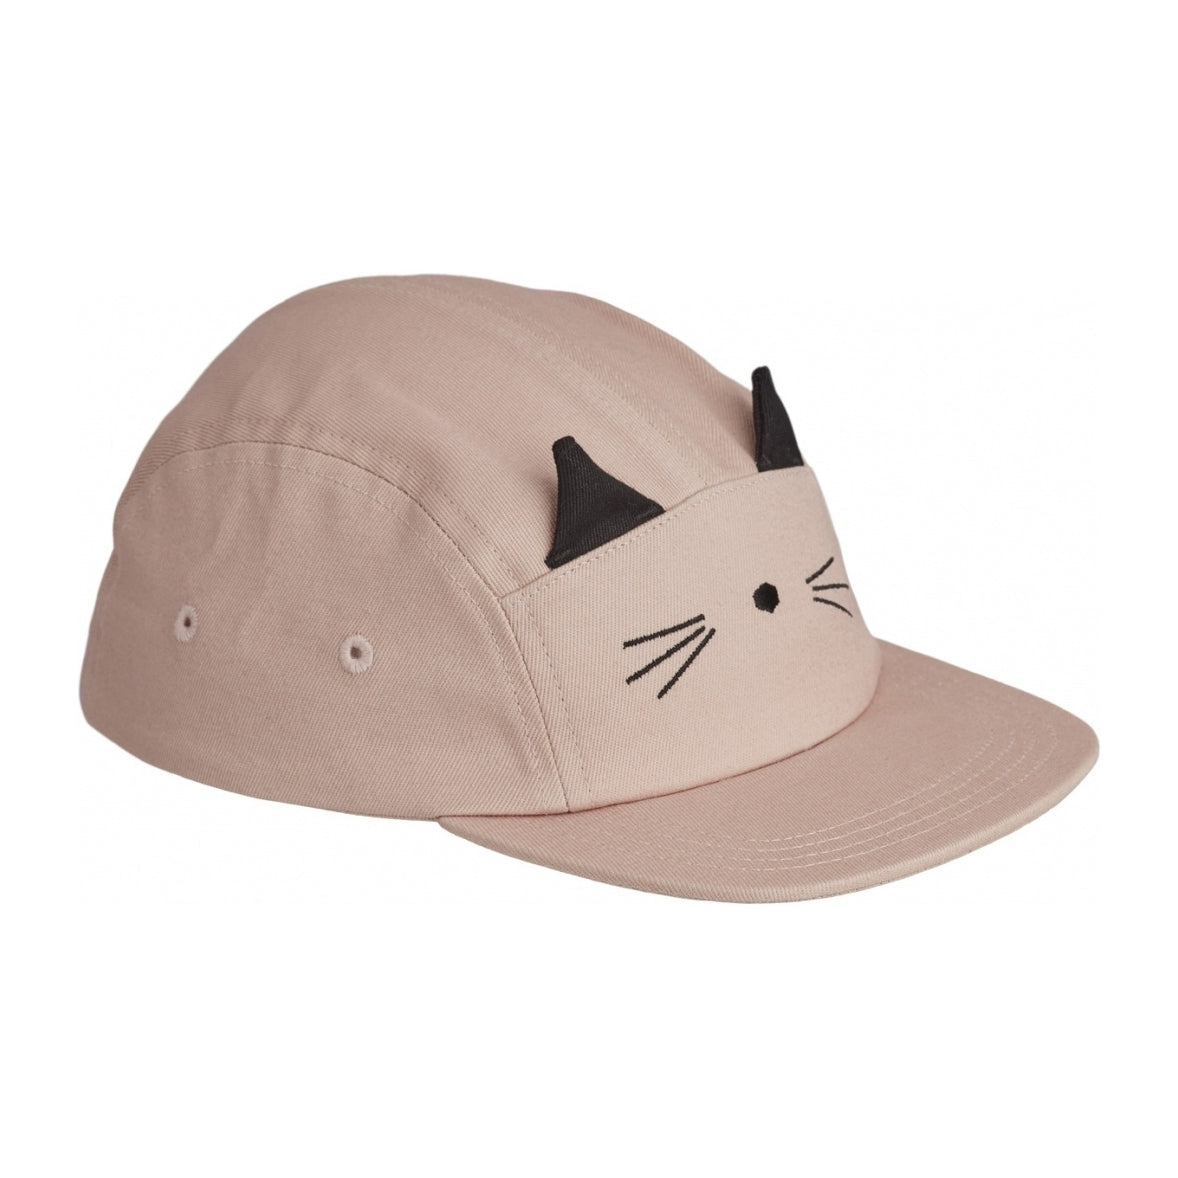 RORY CAP - CAT